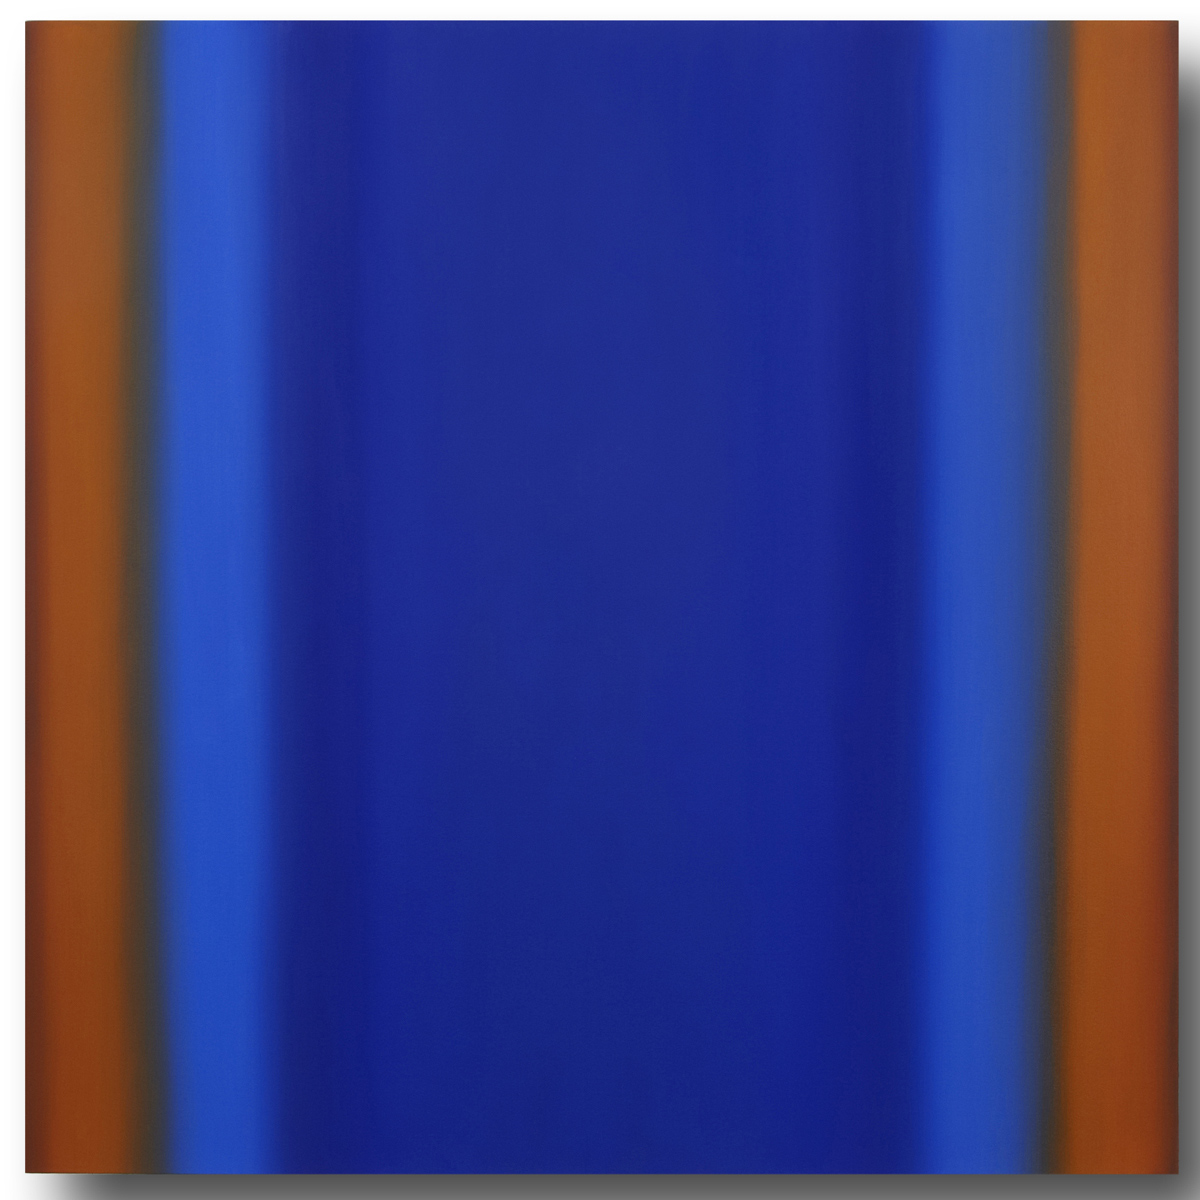 Blue Orange 7-S6060 (Blue Orange Deep), Sense Certainty Series, 2014, oil on canvas on custom beveled stretcher, 60 x 60 x 3 in. (153 x 153 x 7 cm.)